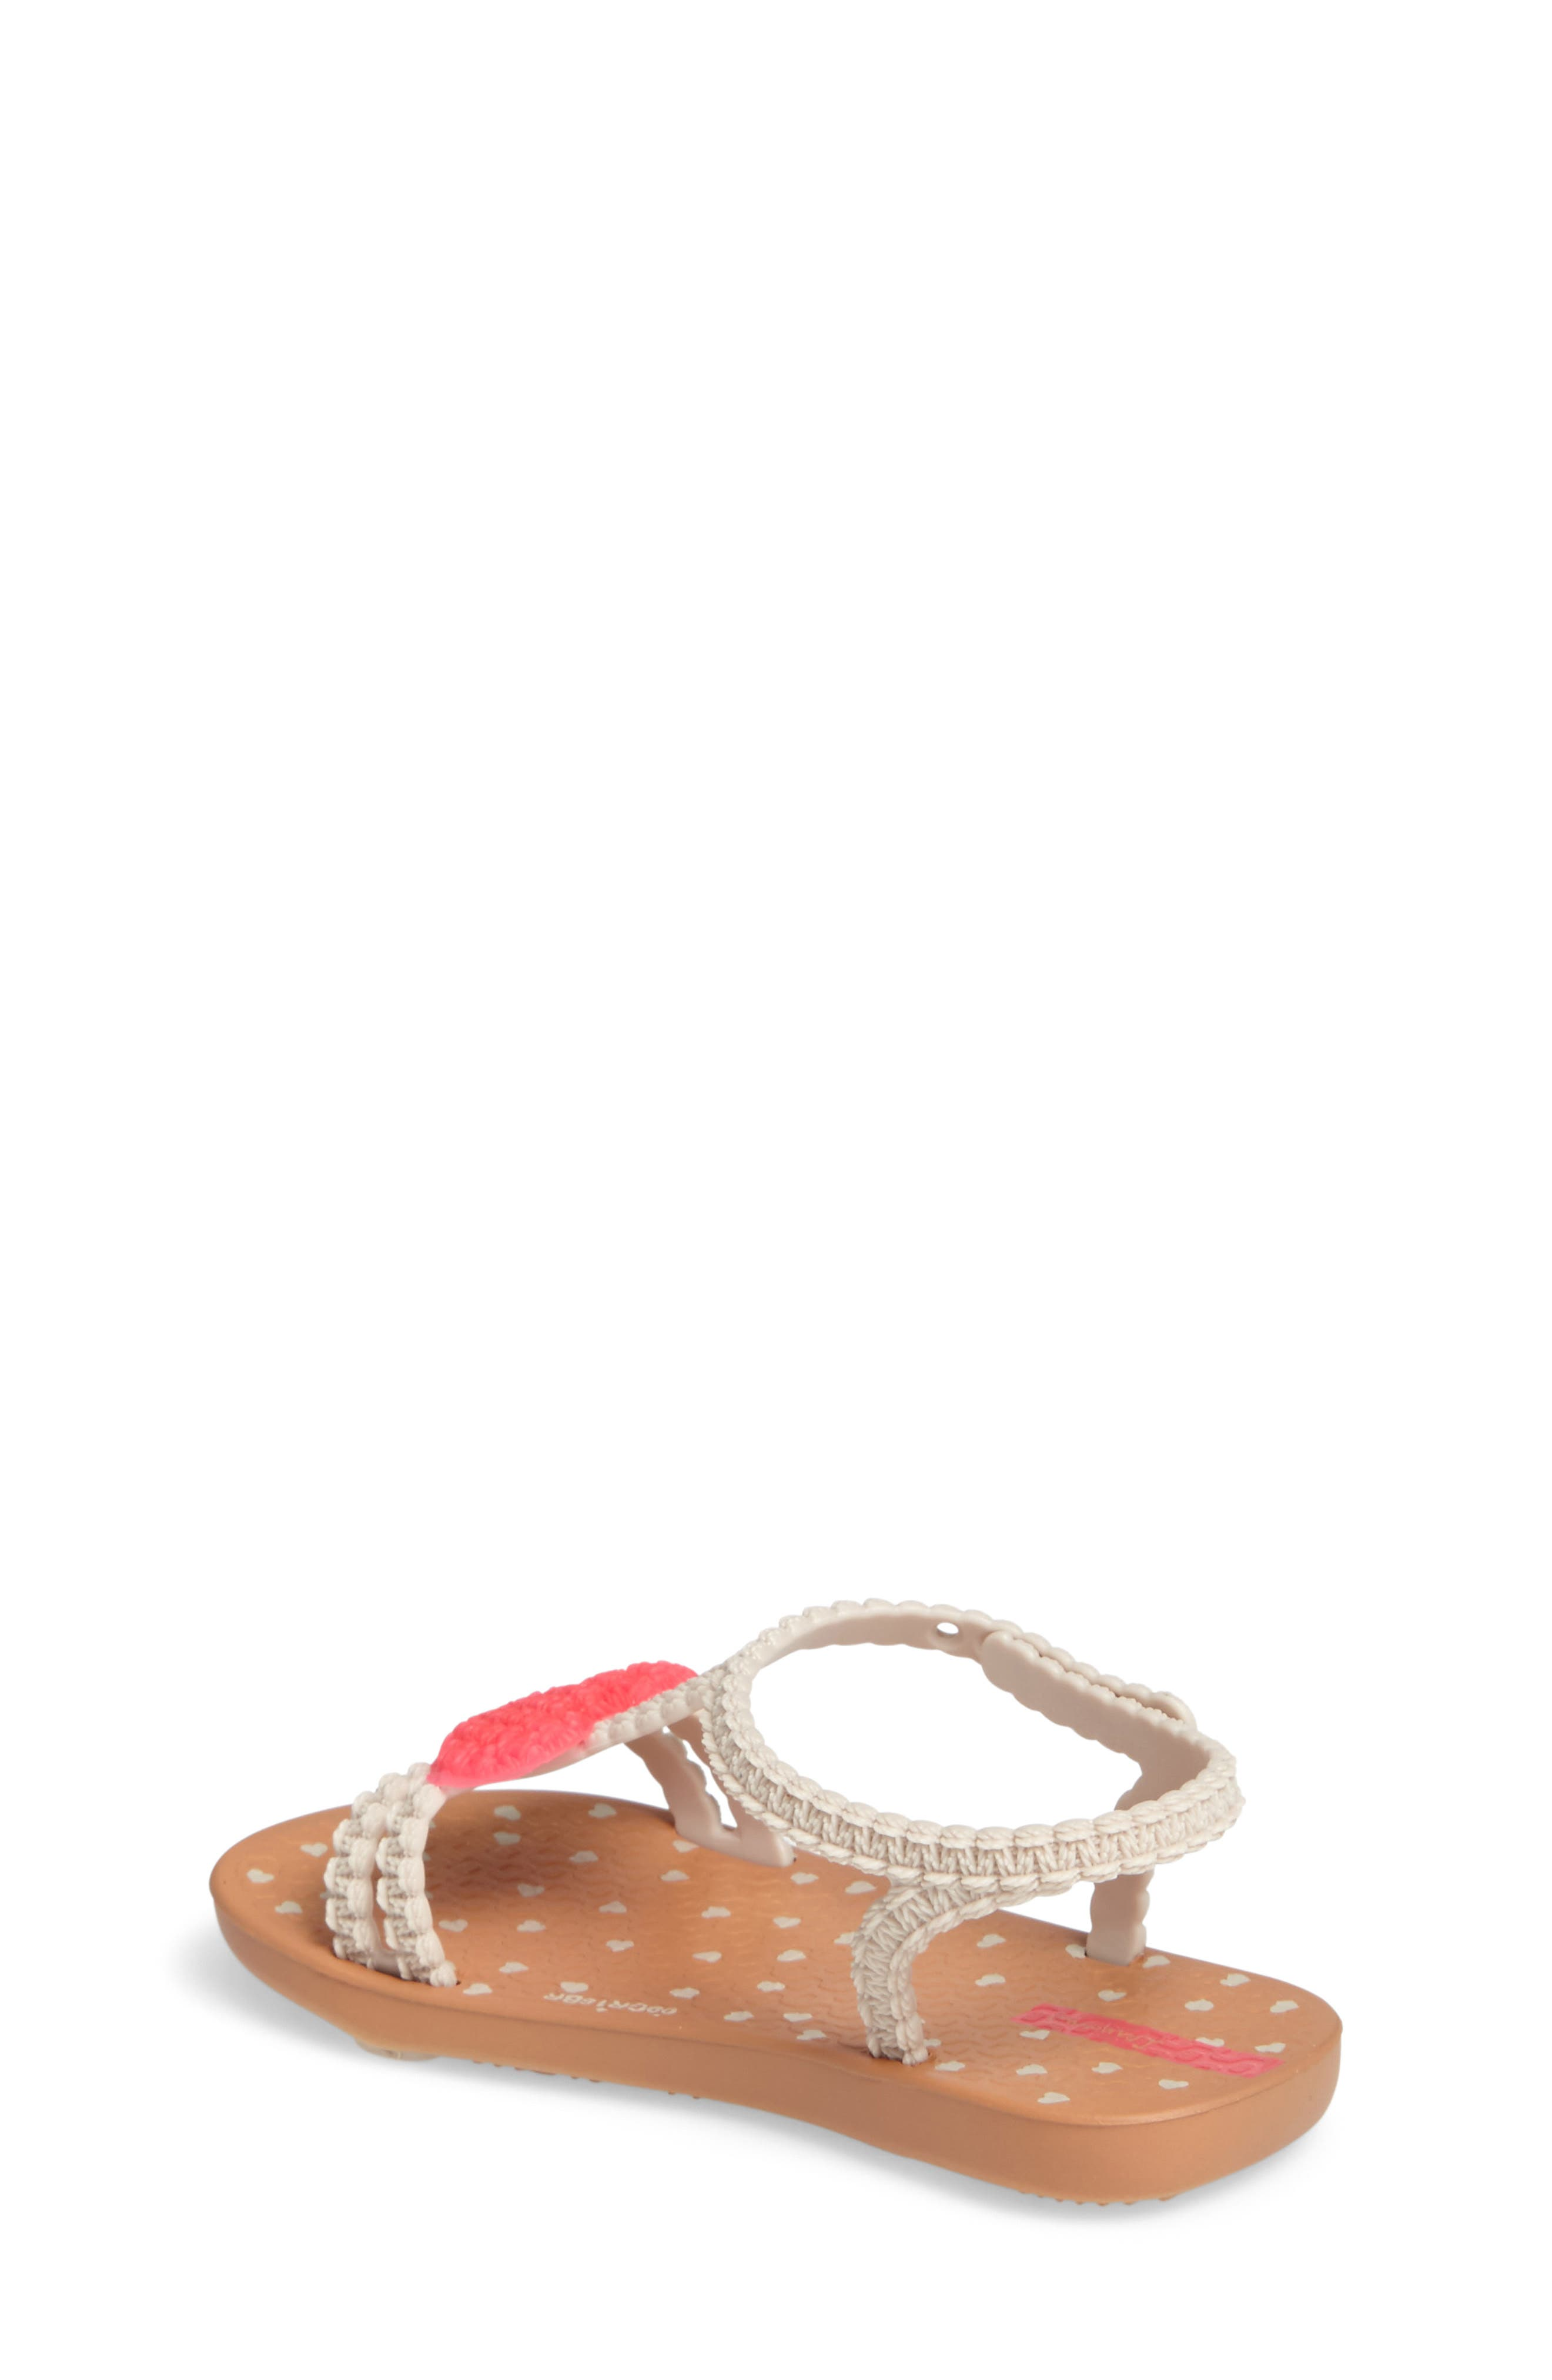 My First Ipanema Sandal,                             Alternate thumbnail 2, color,                             Brown/ Pink